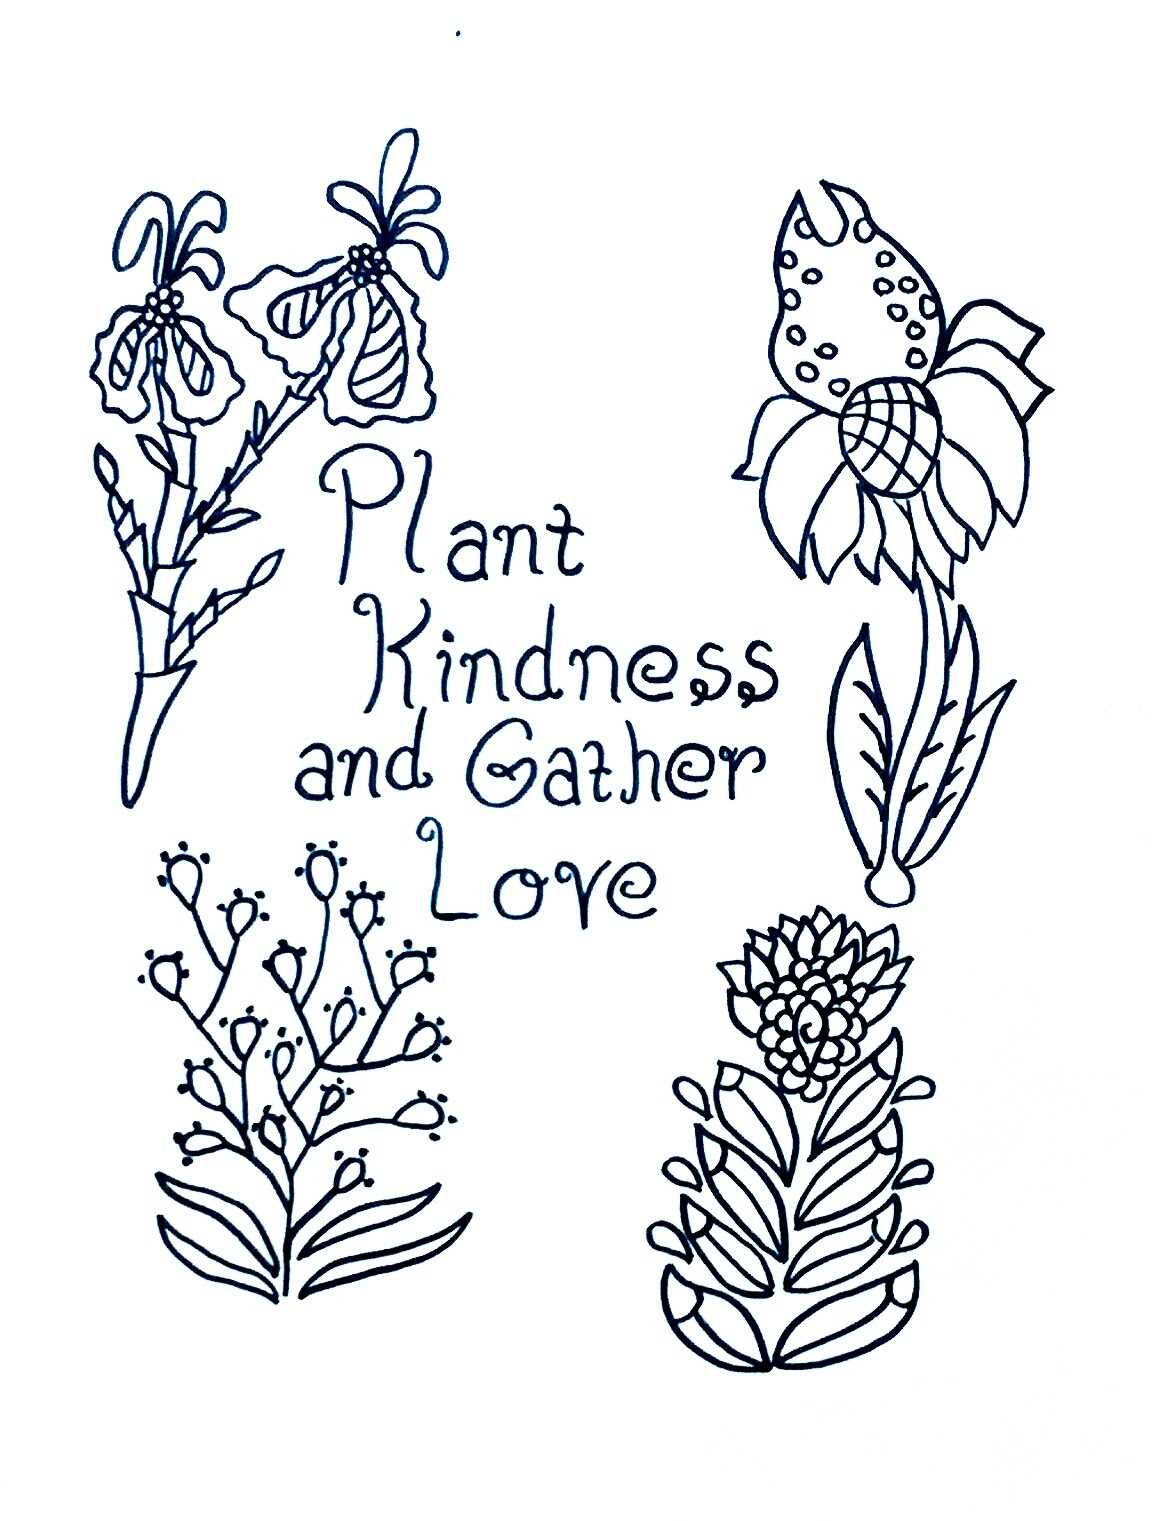 Plant Kindness And Gather Love Is One Of My Favorite Quotes Also A Coloring Page From New Book Jodys Garden